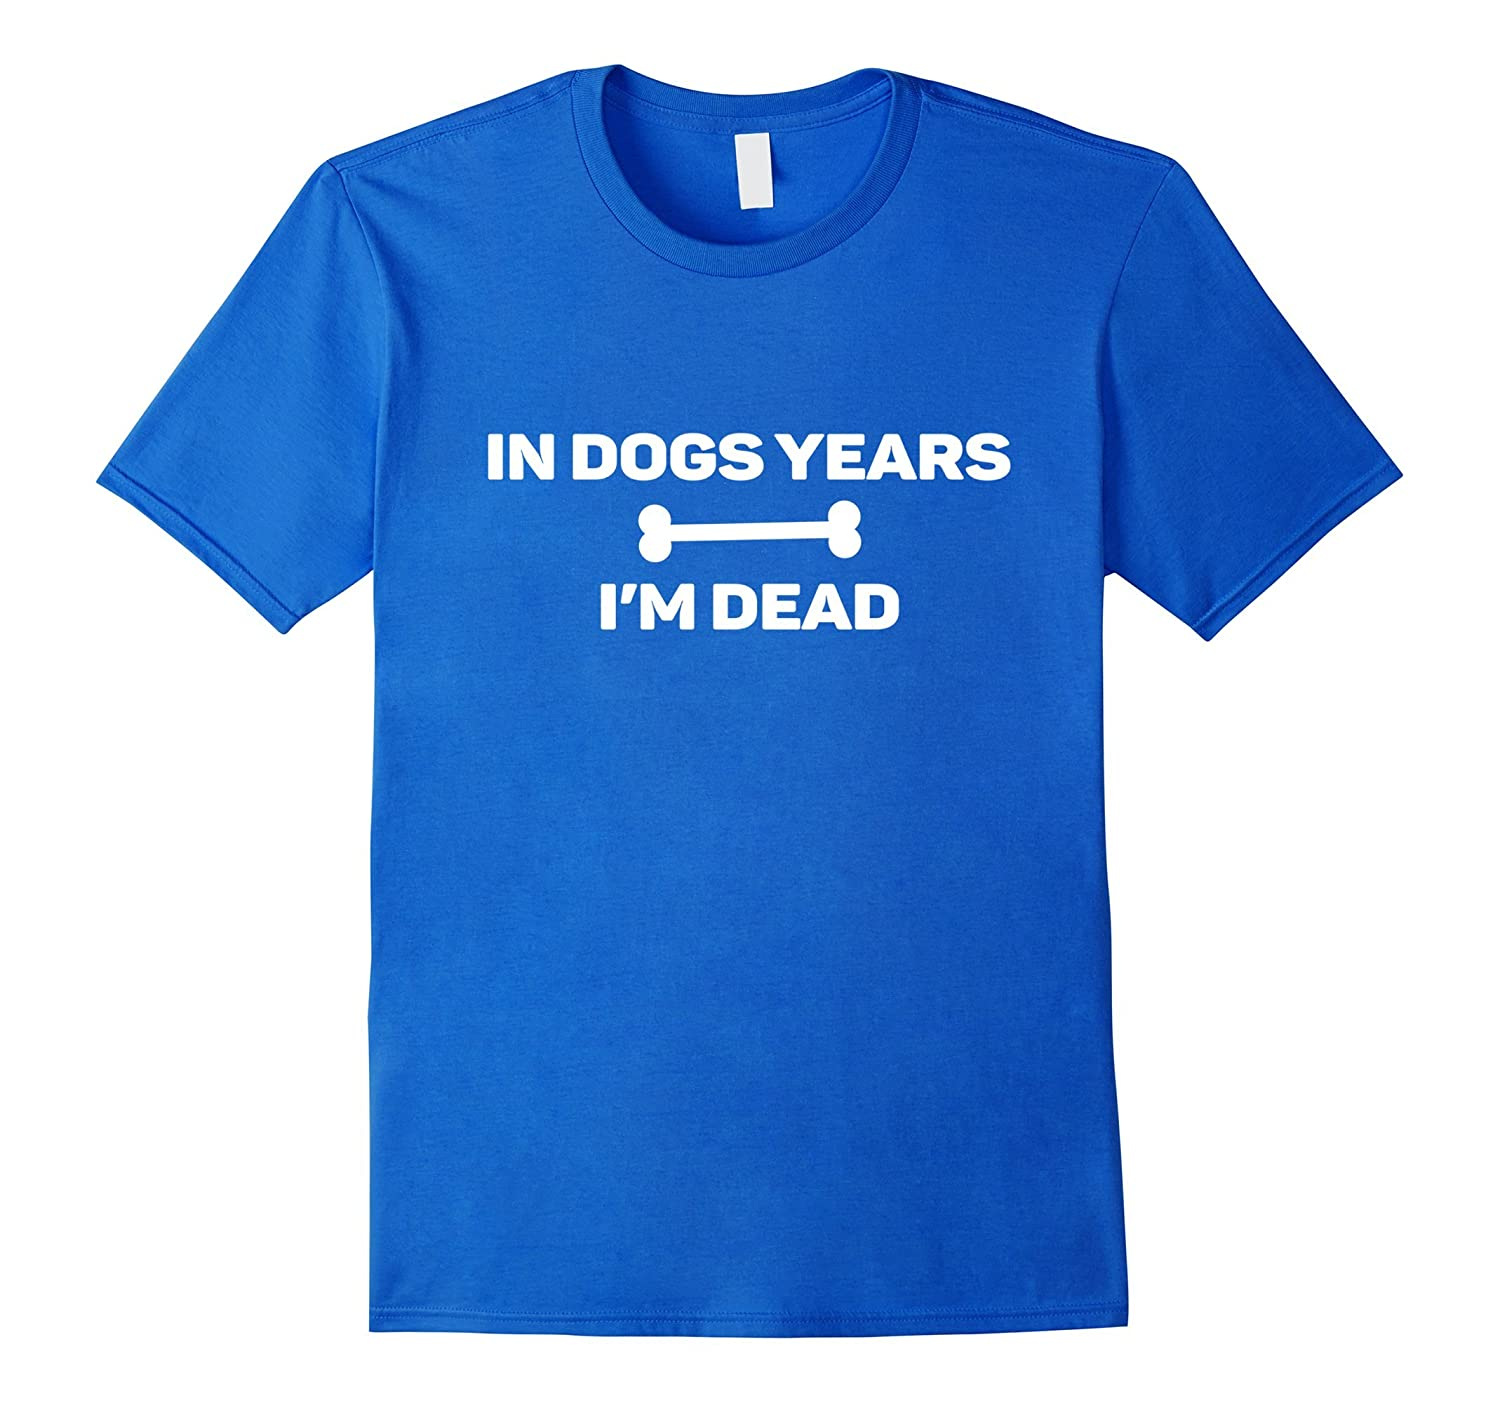 4f4c6477a3 In Dog Years I'm Dead – Funny Birthday Over The Hill T-Shirt-CL ...